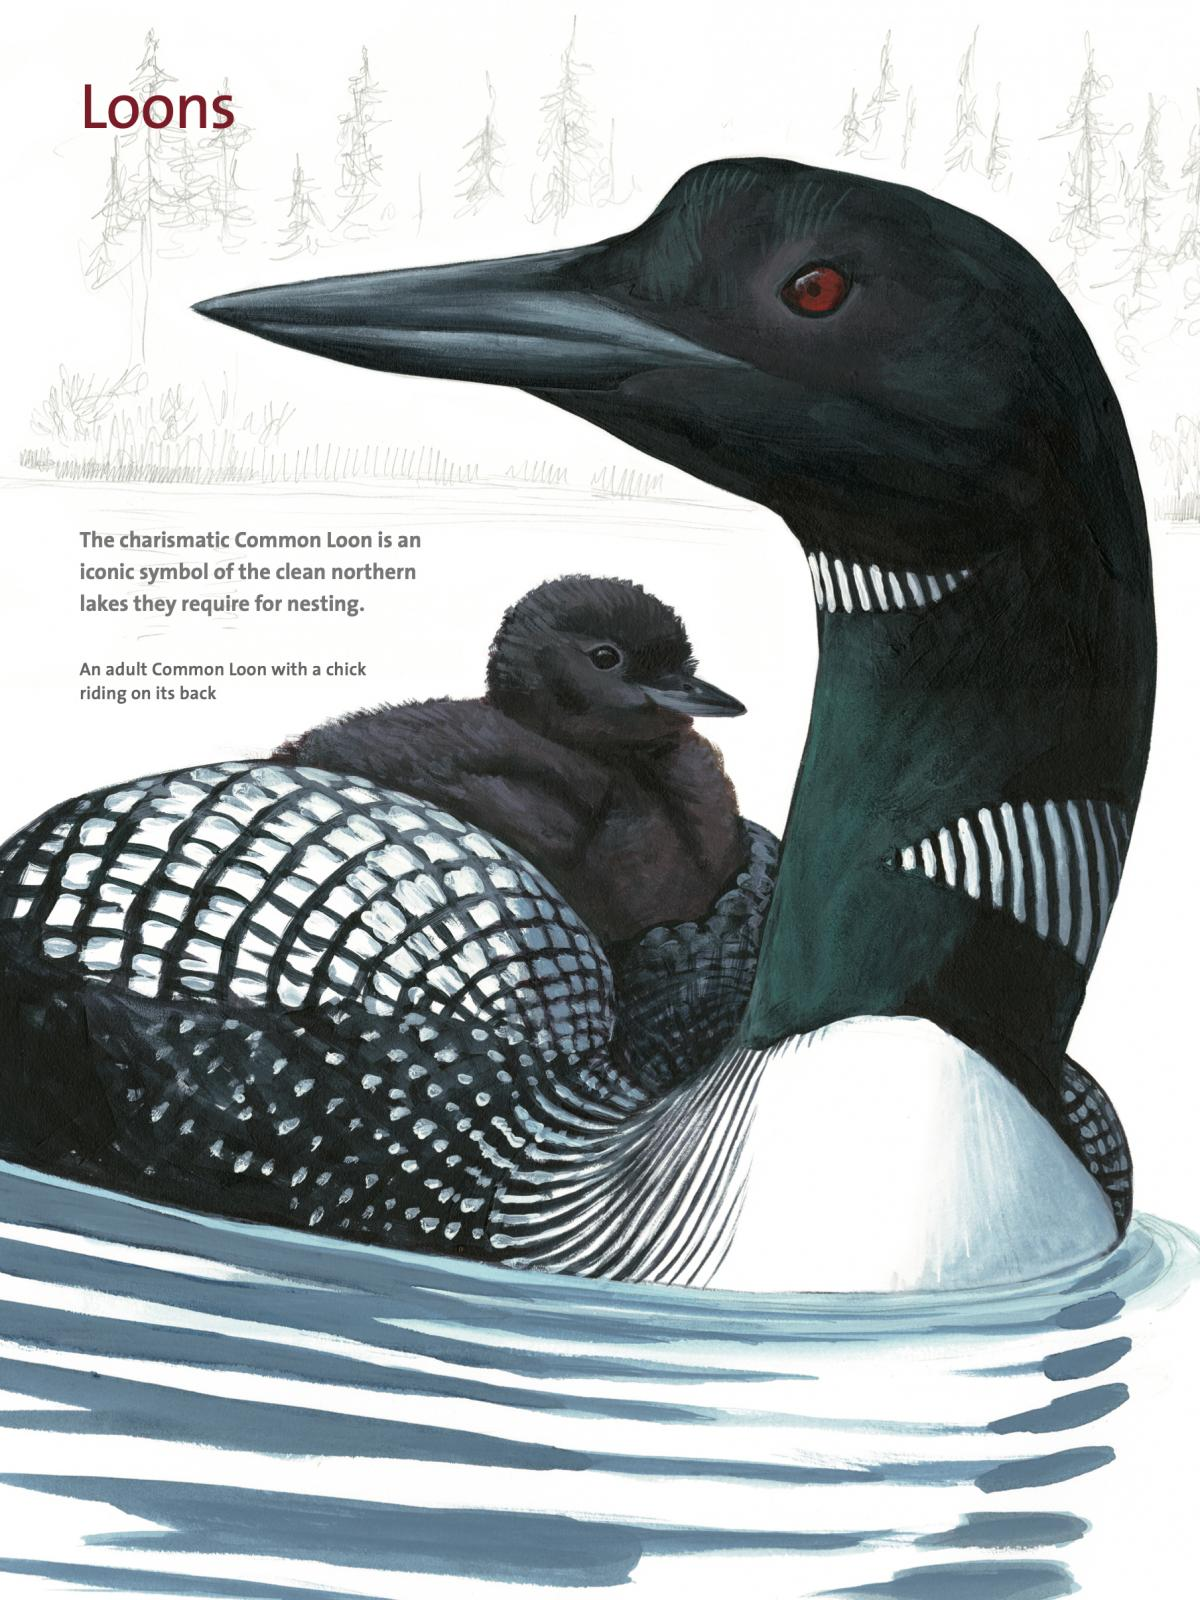 A page on Loons from David Allen Sibley's What It's Like To Be A Bird.